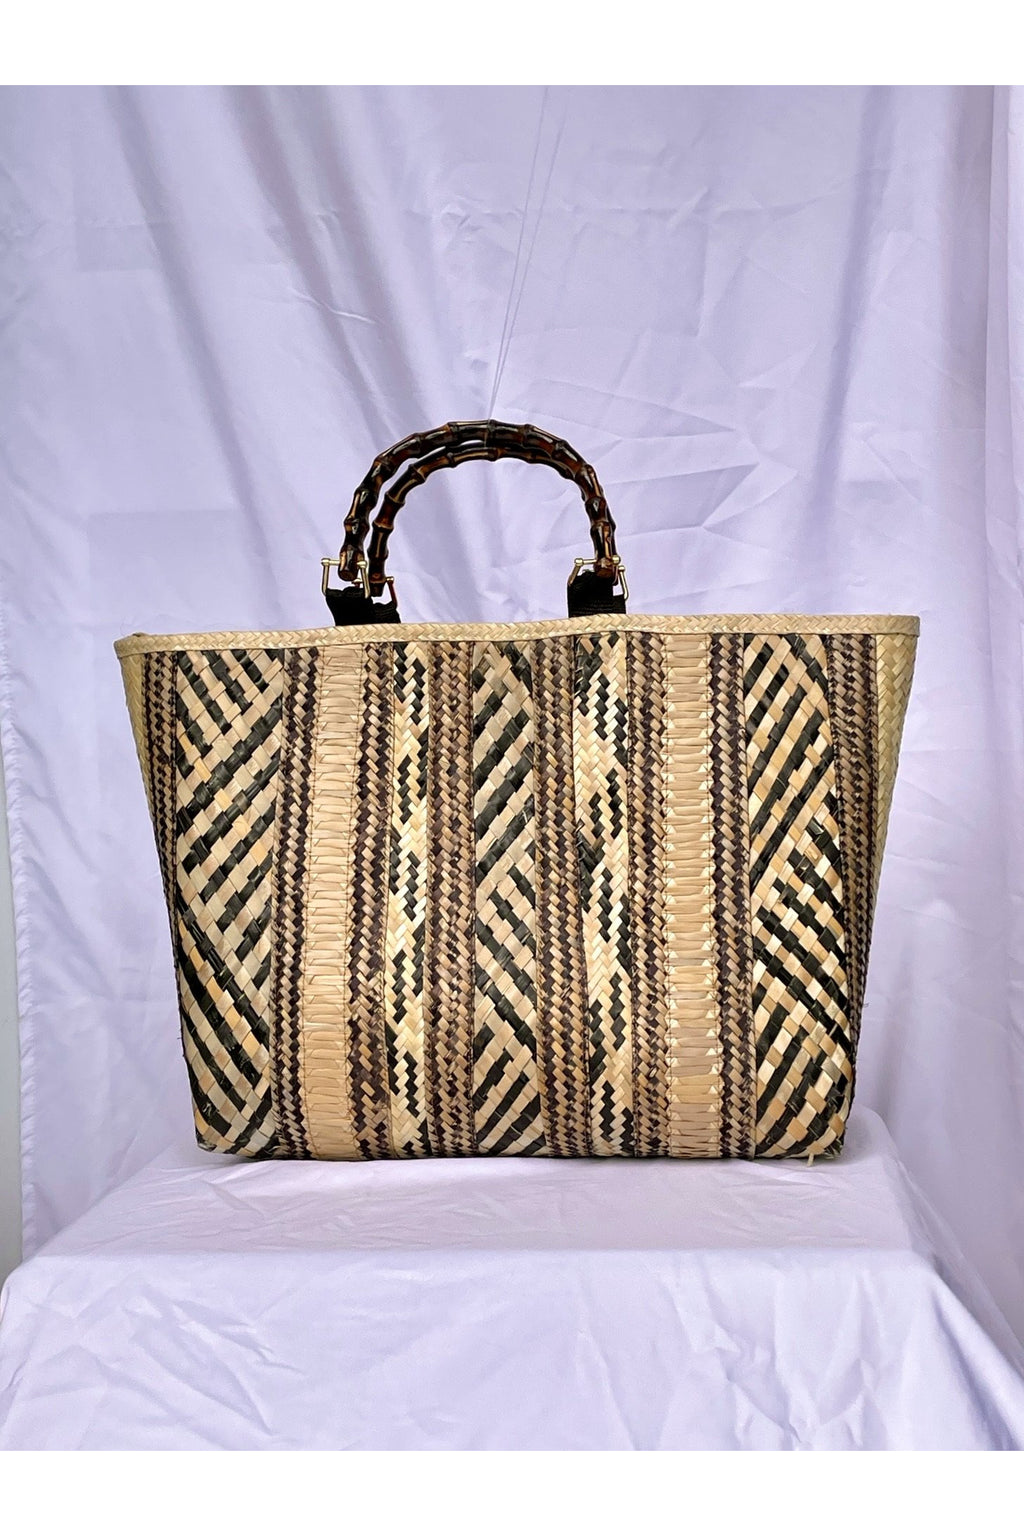 Mixed Black Bahamas Straw Market Tote Bag - Hausofassembly